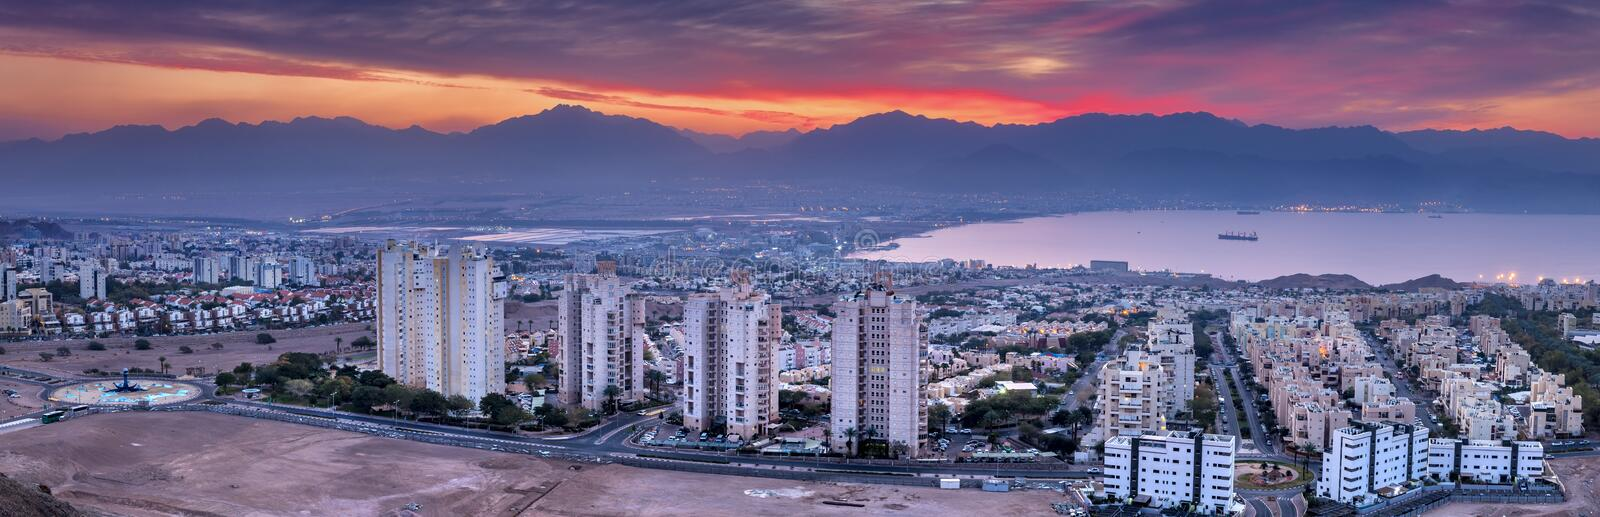 Colorful aerial scenic view on Eilat Israel and Aqaba Jordan cities. Eilat is a famous resort and recreational city in Israel. Photo was taken from the hills stock photography